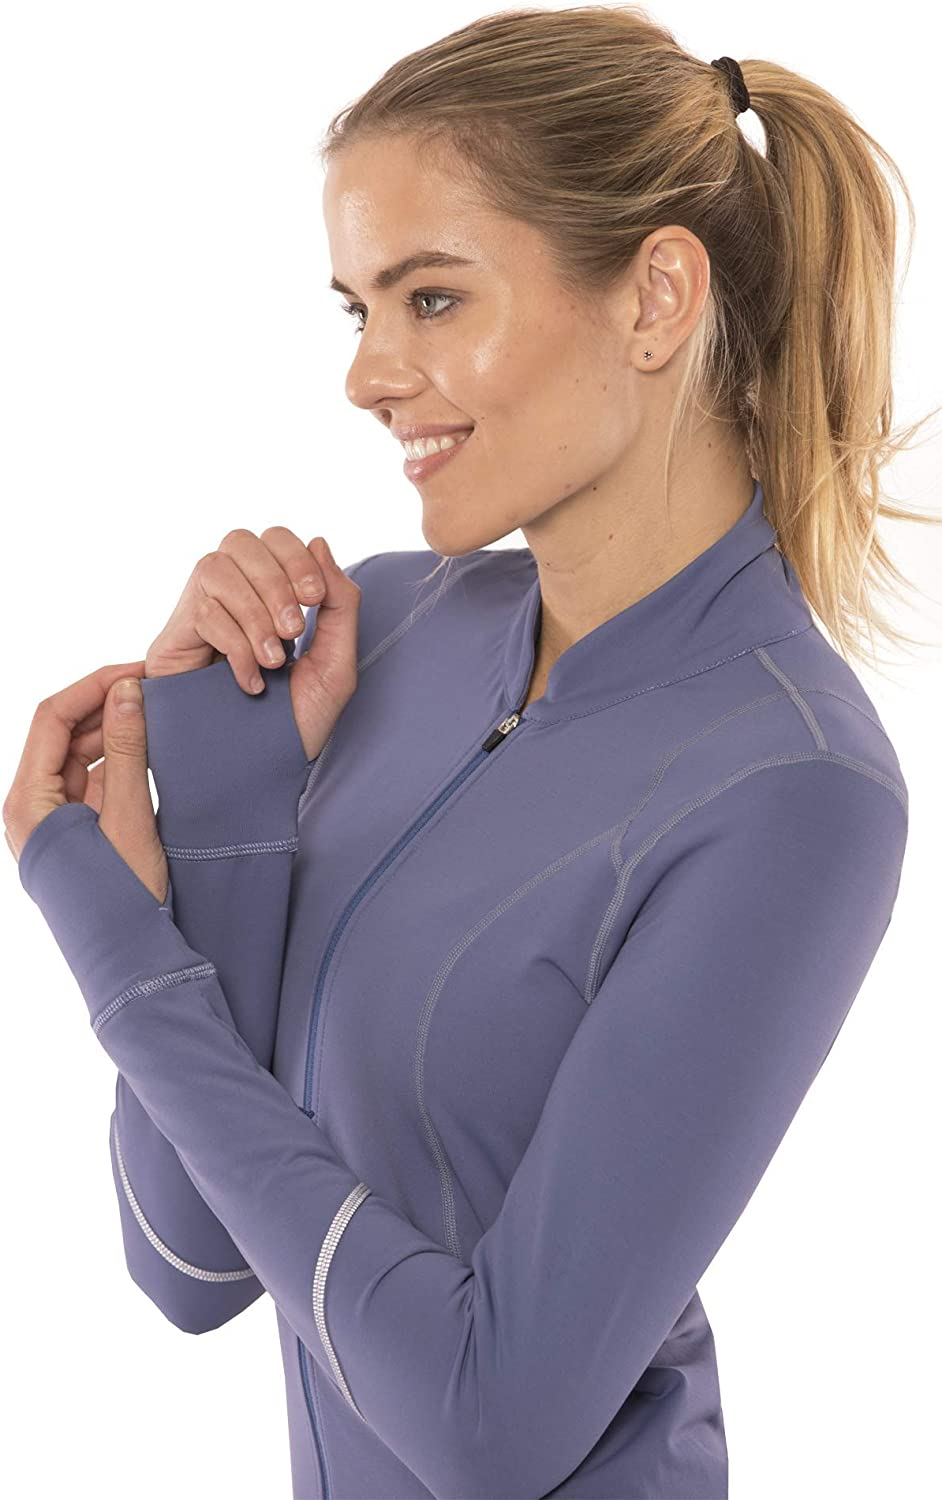 Yogatech Reflective Women Soft Lightweight Full Zip Yoga Running Jacket with Invisible Zipper Pockets Up to 3X